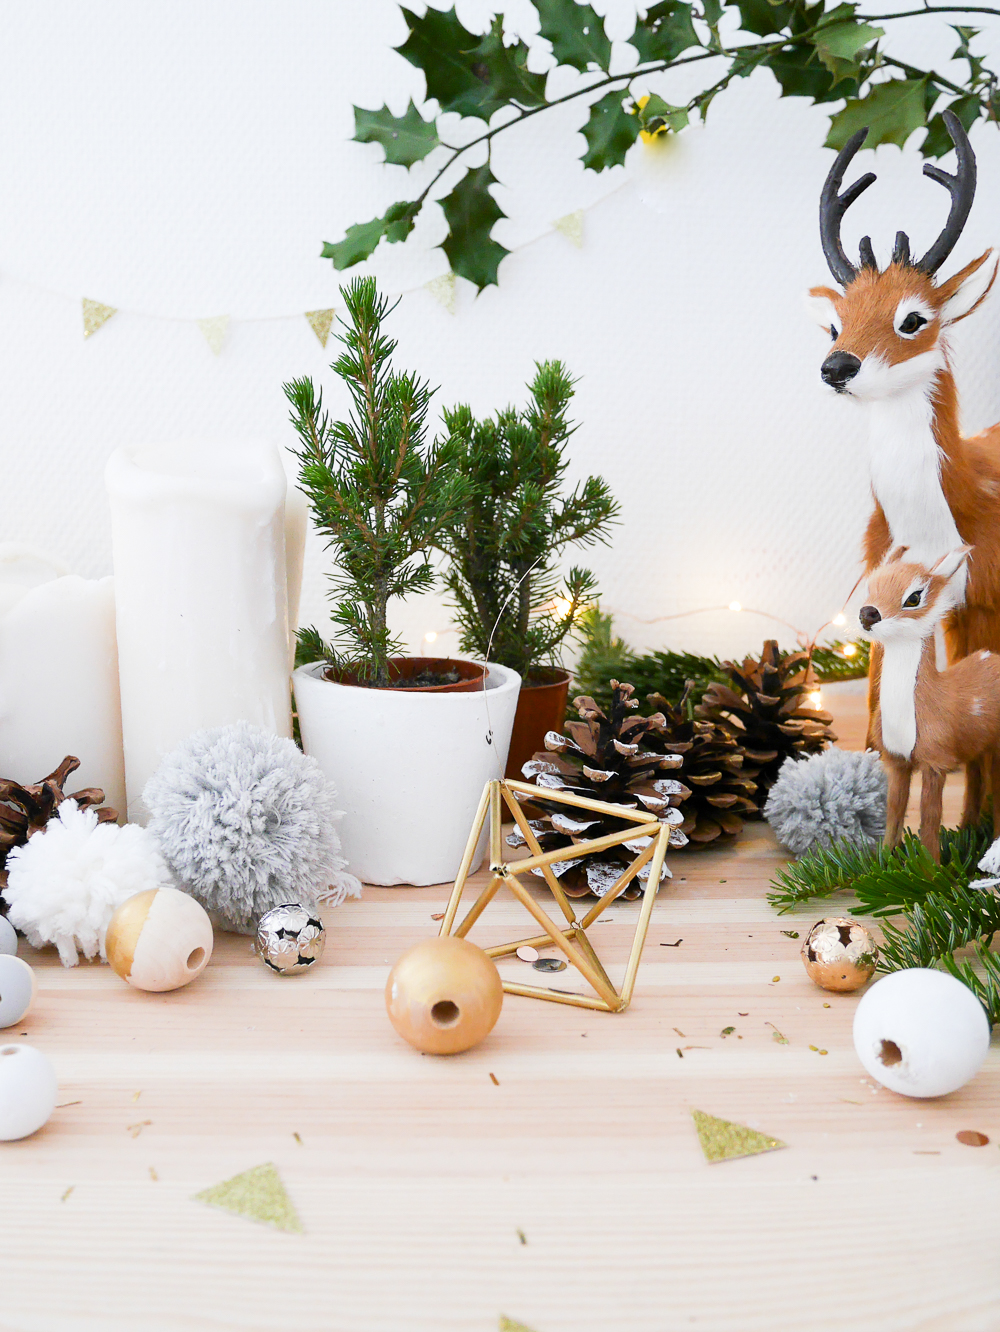 diy-deco-noel-lili-in-wonderland-157